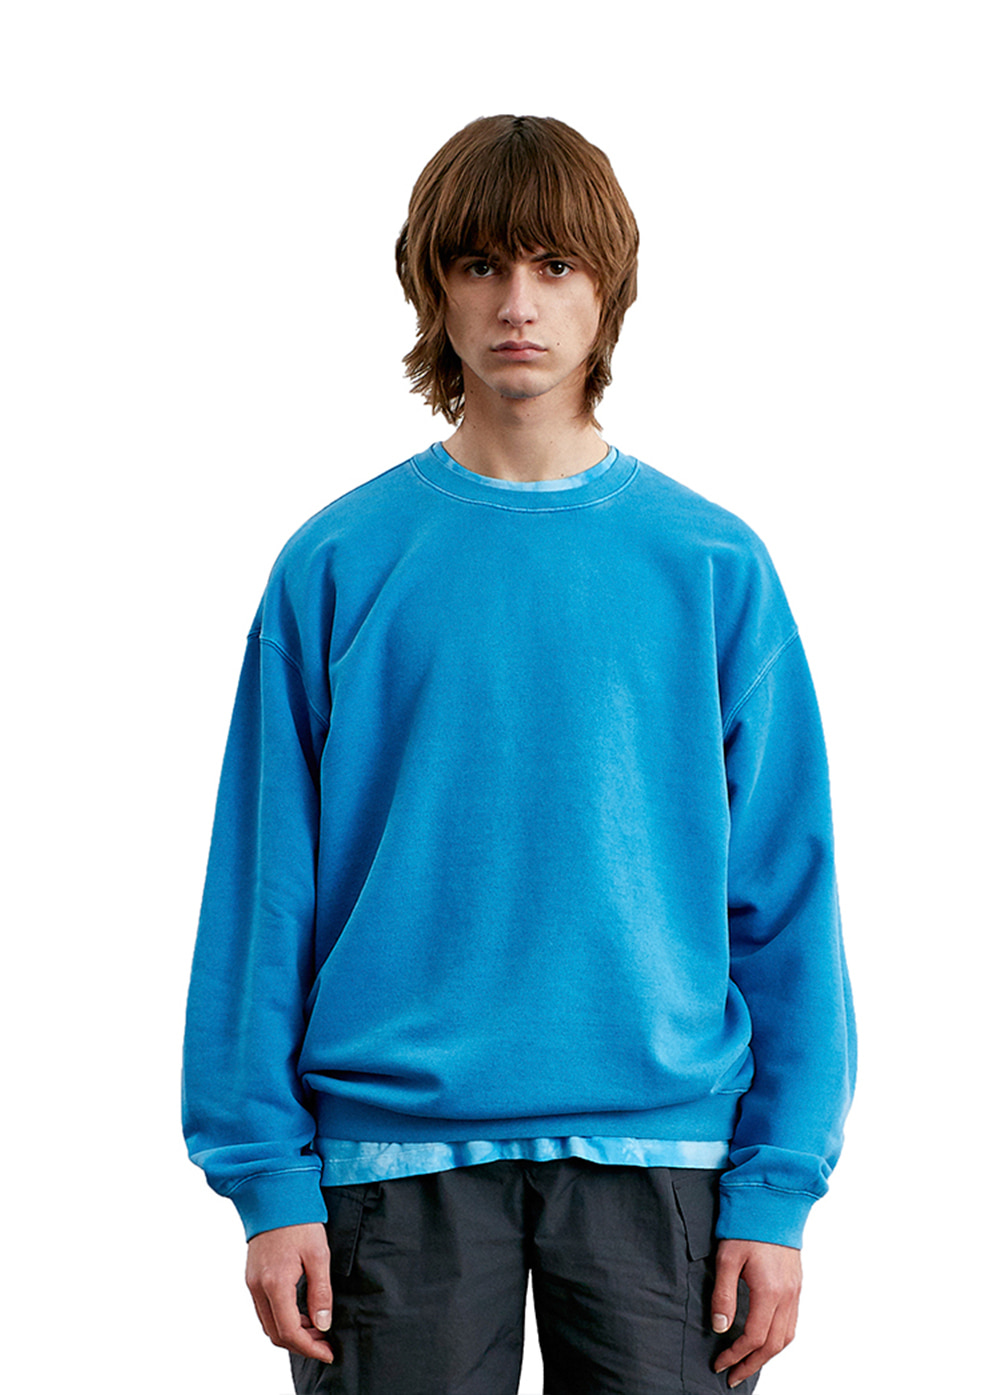 LABEL P-DYED SWEATSHIRT sky blue